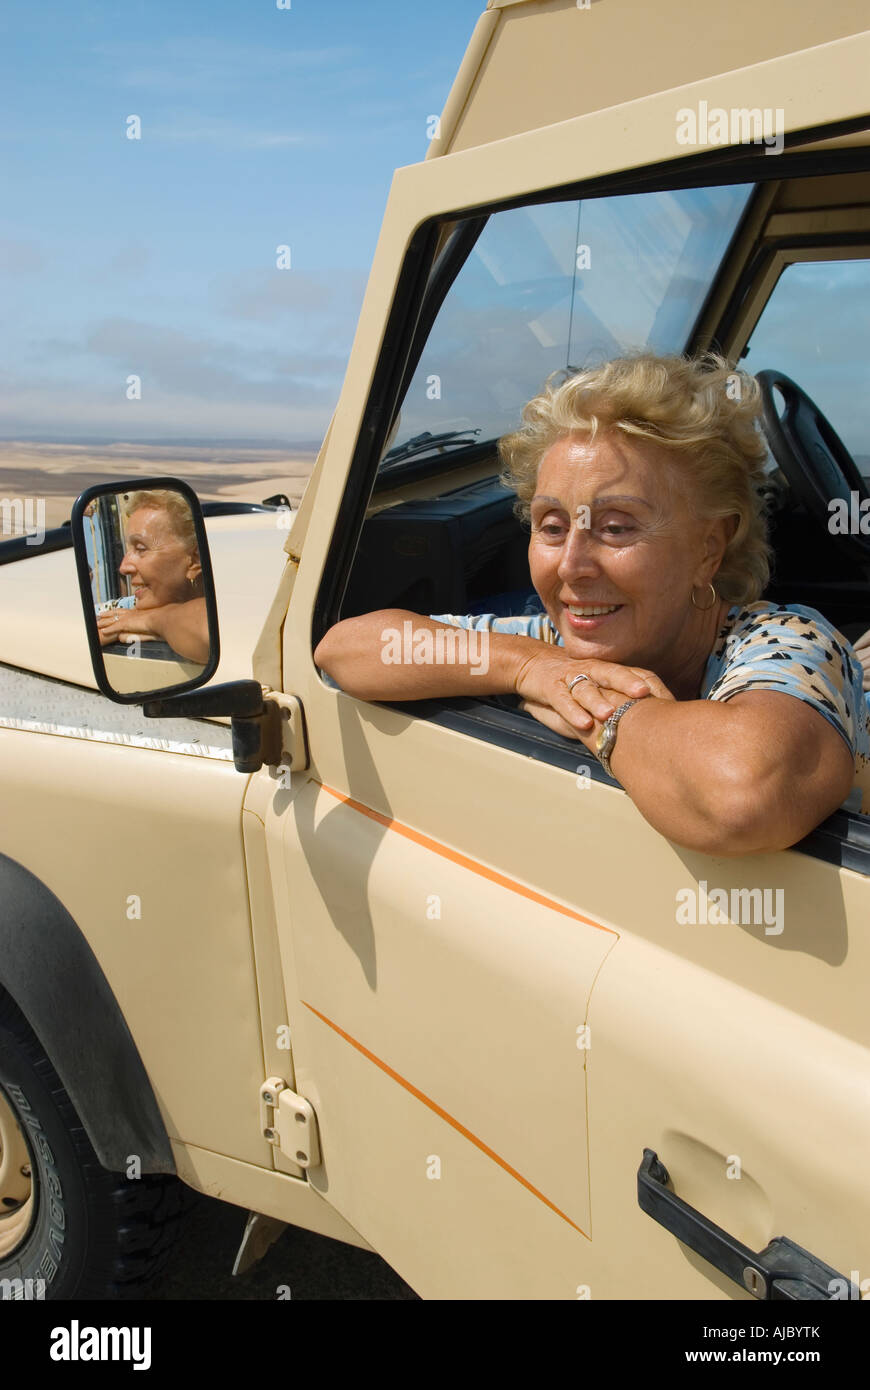 Woman Looking Through the Window of a 4X4 Vehicle - Stock Image